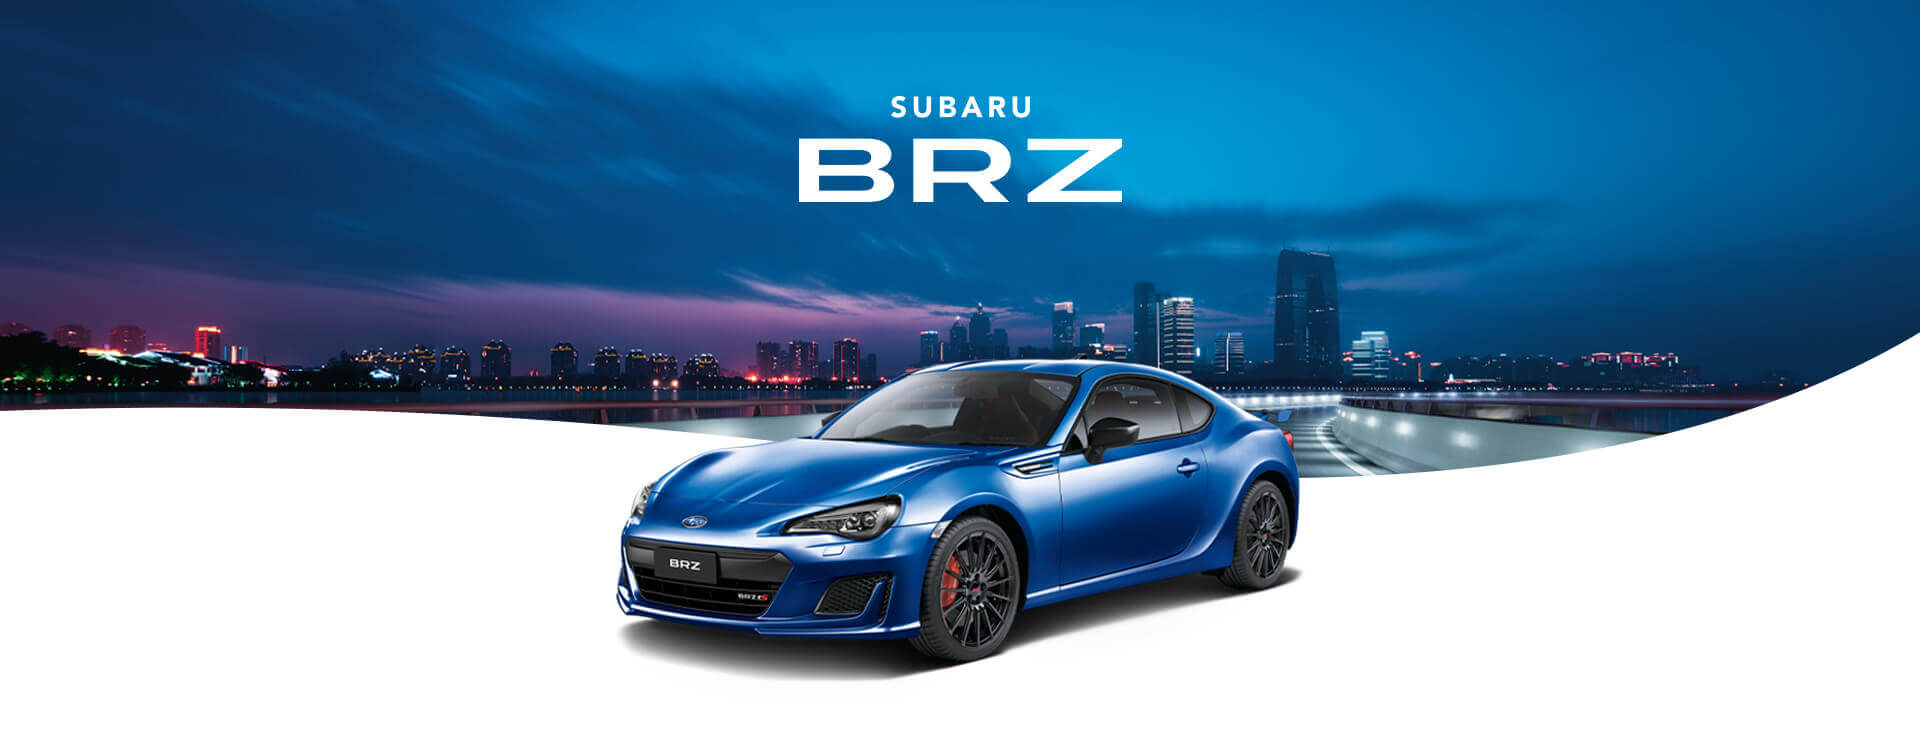 BRZ The classic sports car by Subaru